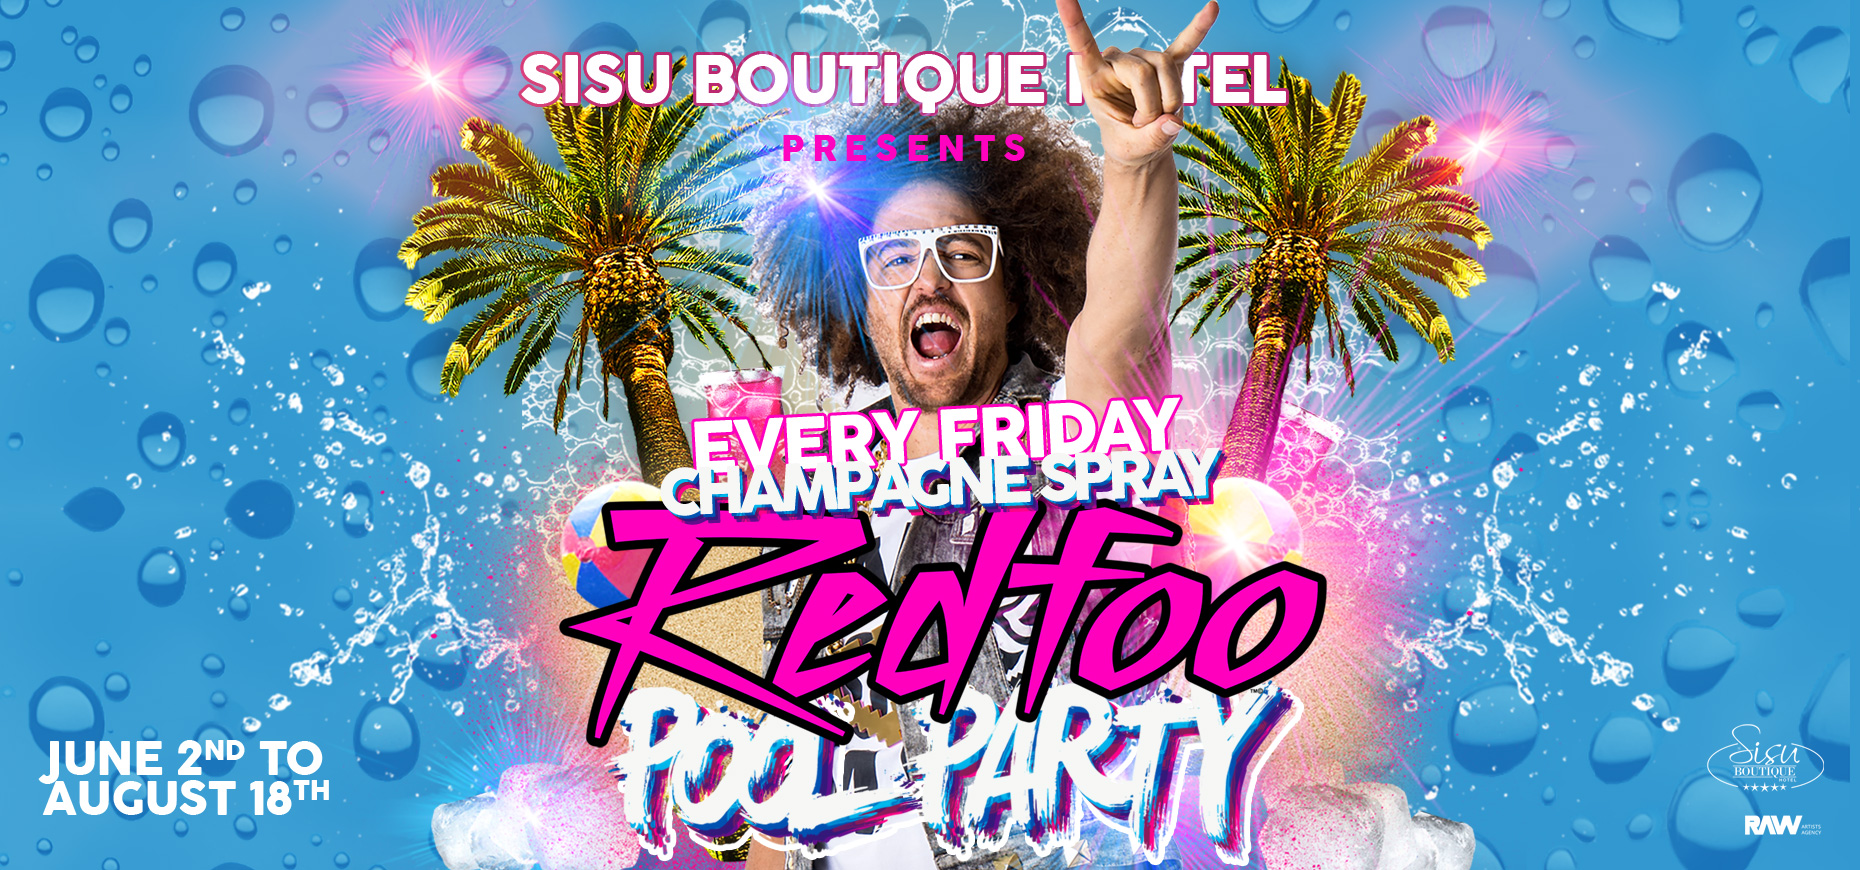 Redfoo - Champagne Showers